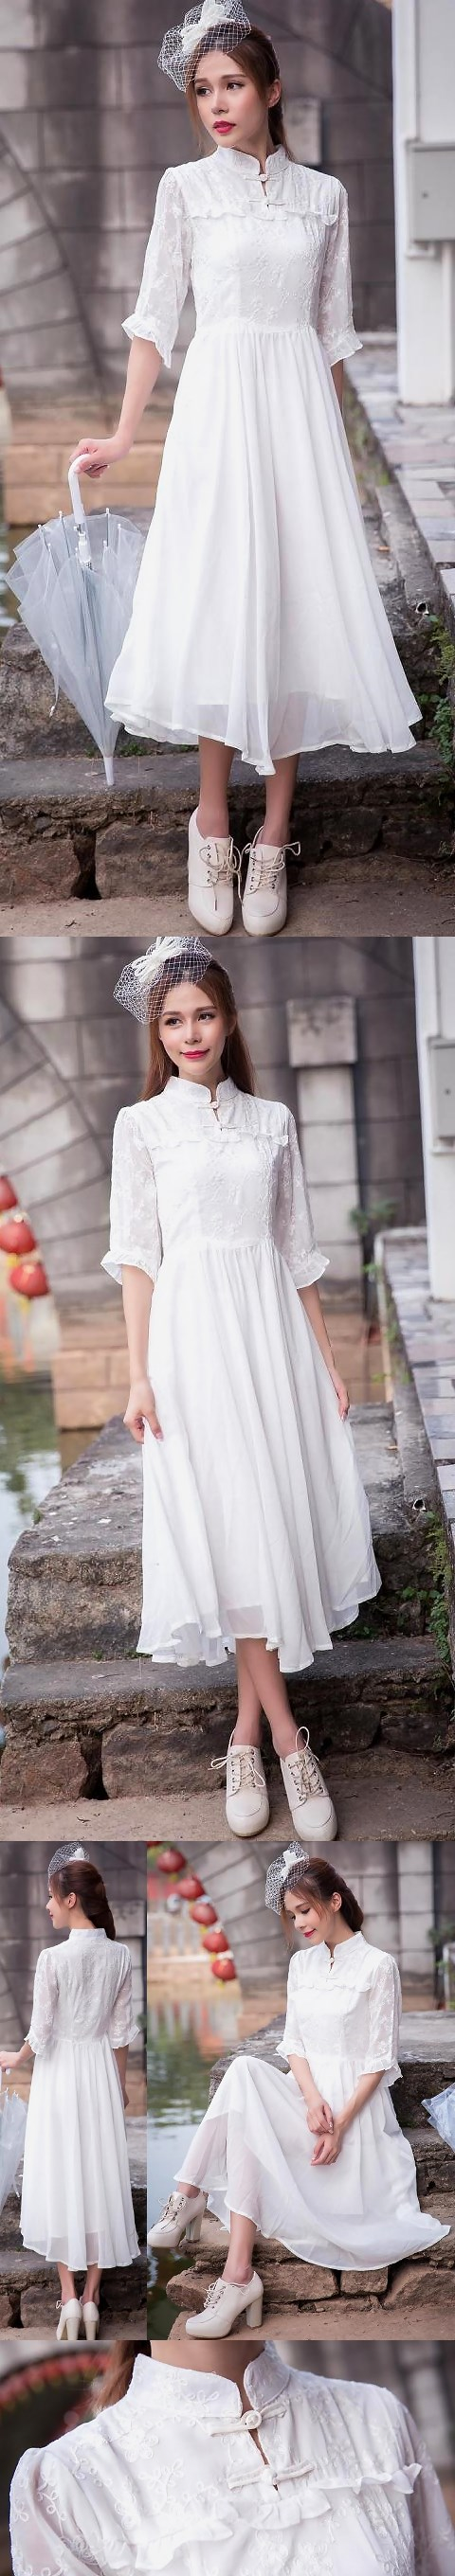 Ethnic 3/4-sleeve Embroidery-gauze Dress -  White (RM)